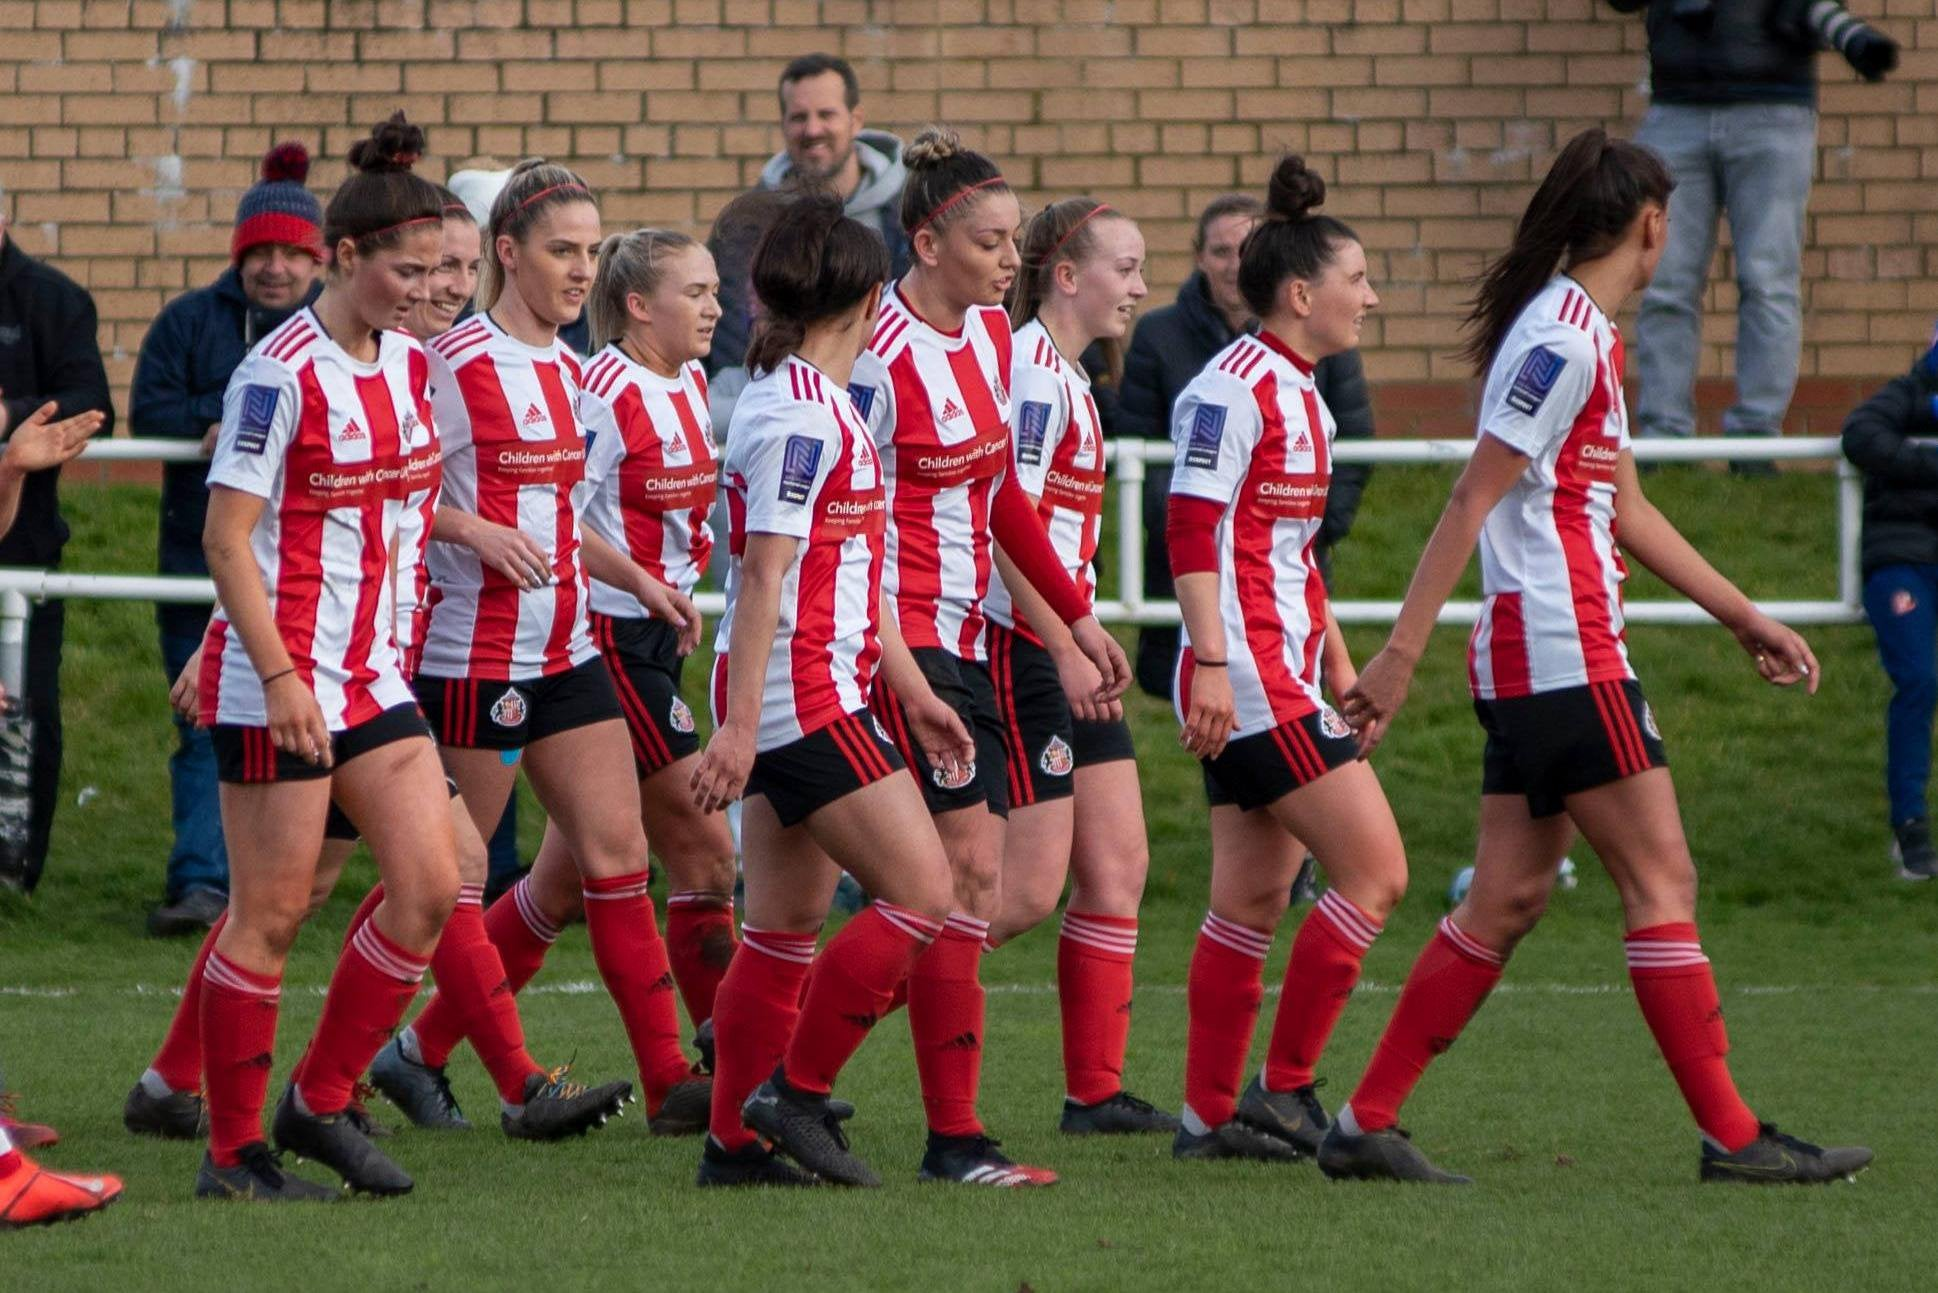 Sunderland 'remain committed' to Ladies team despite departure of key players : WomensSoccer